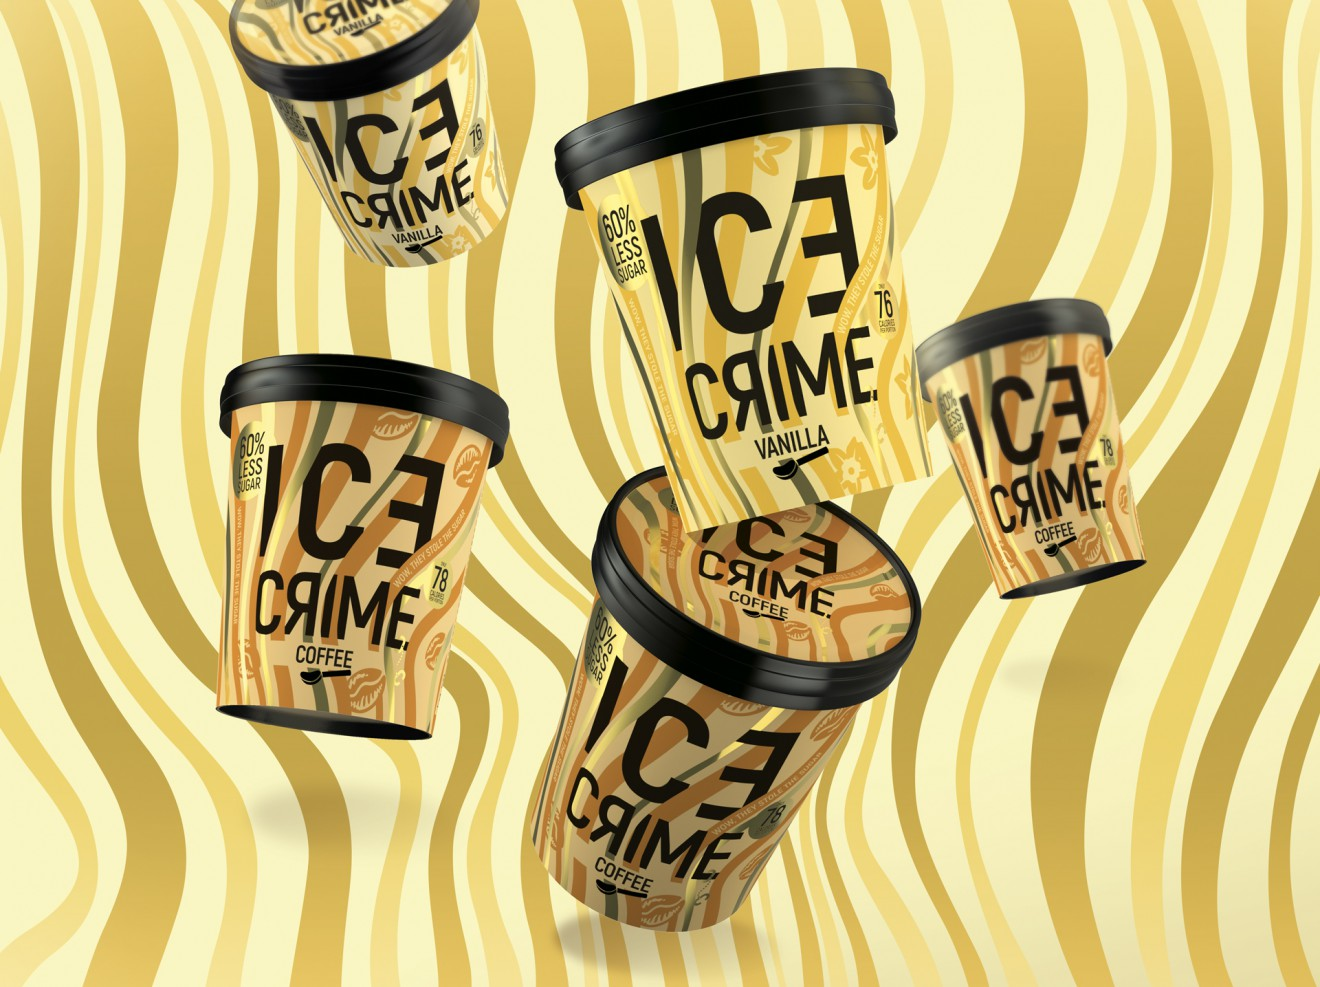 Quatre Mains package design - vanilla, almond, ice crime, packaging